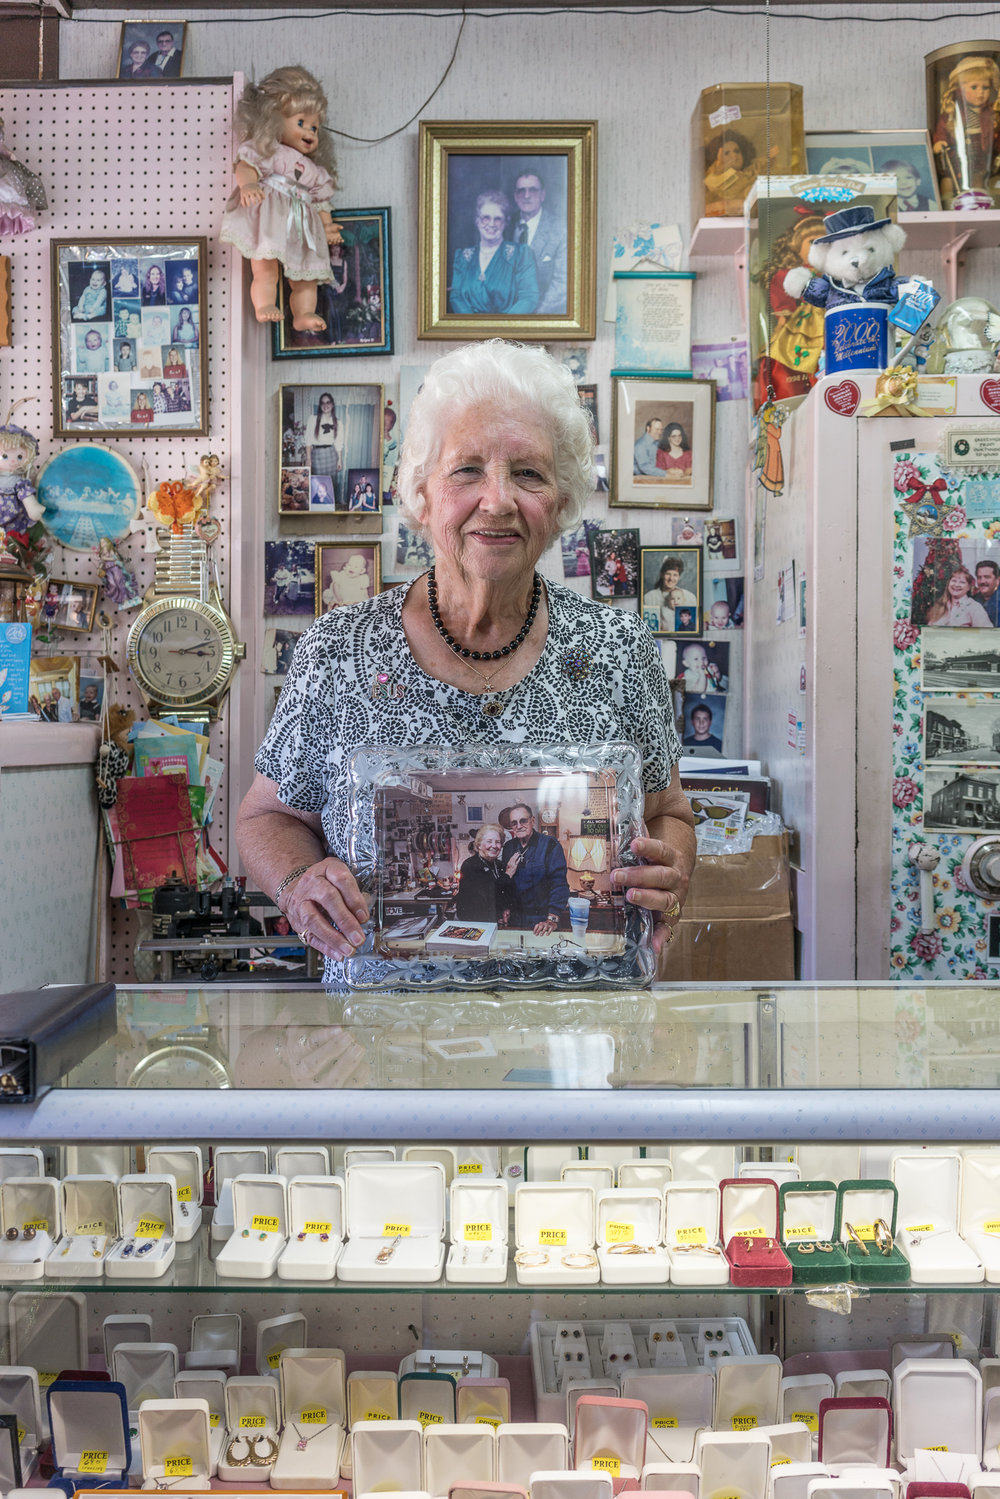 Carol at the Jewelry Shop, De Soto, Missouri, 2017